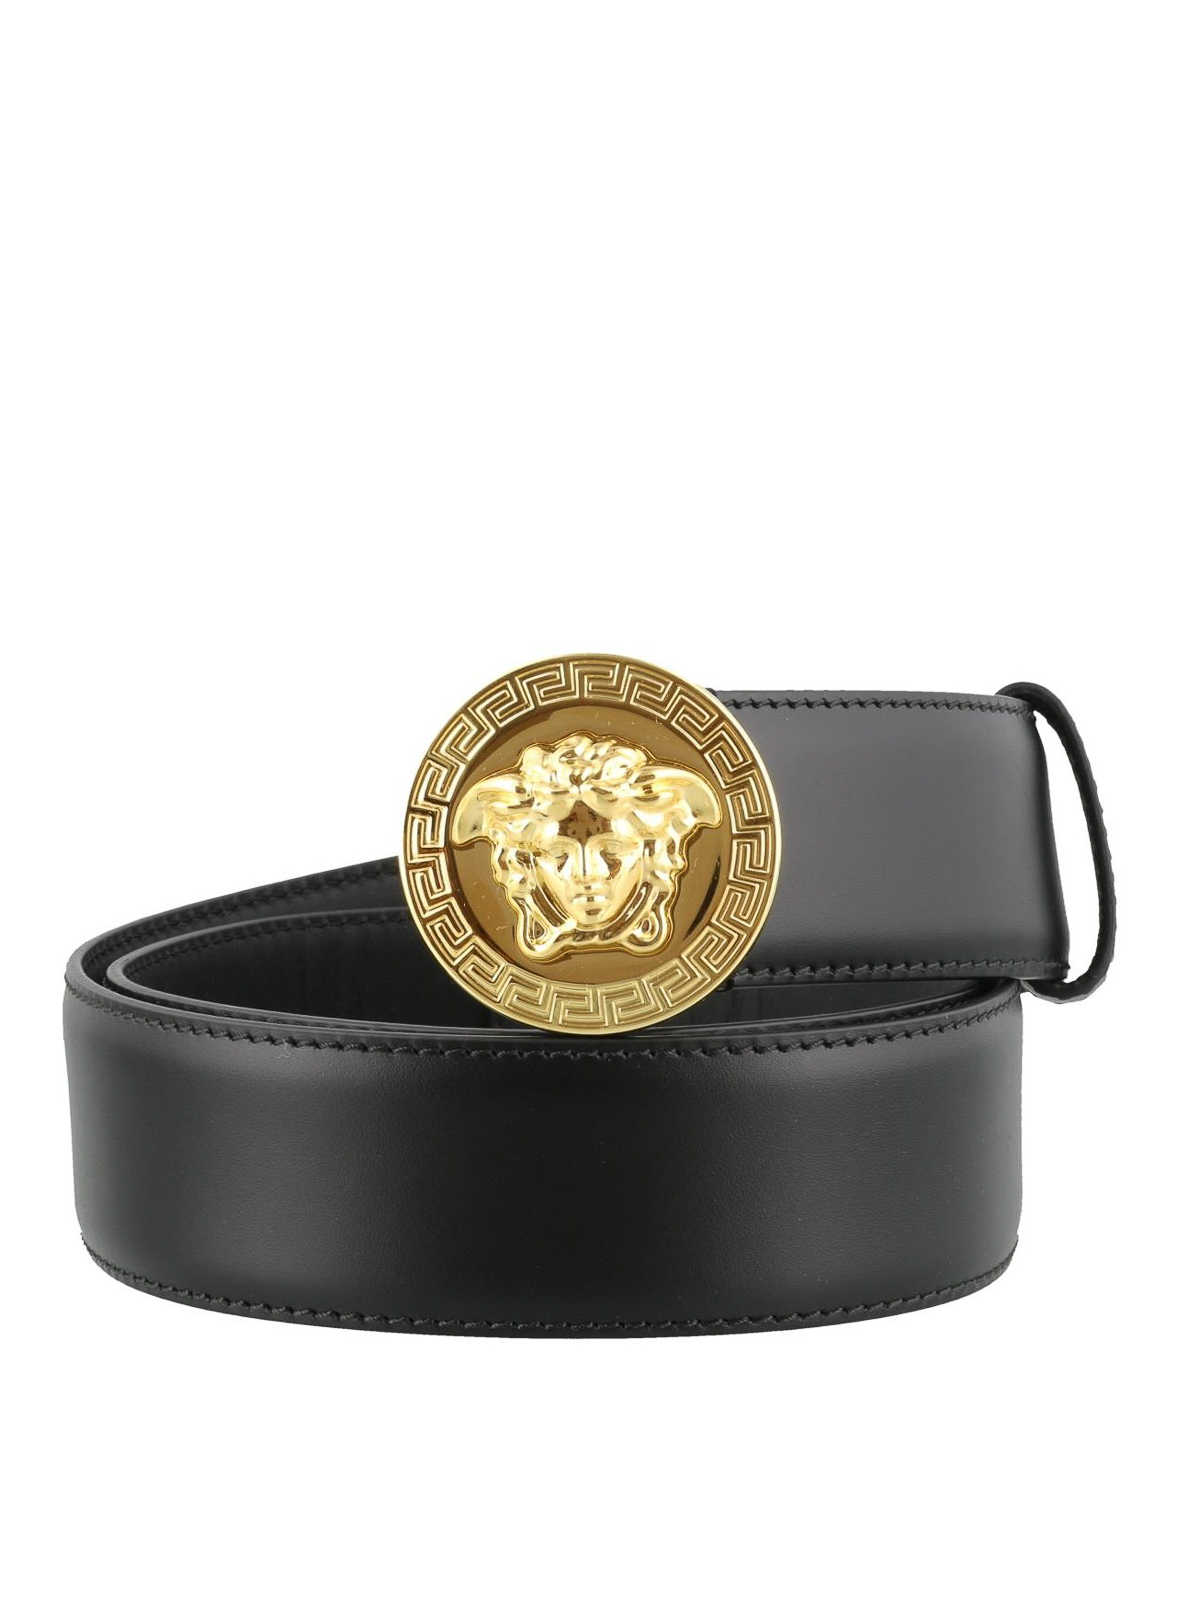 Versace Medusa Head Leather Belt Belts Dcu4806dvtp1d41oh